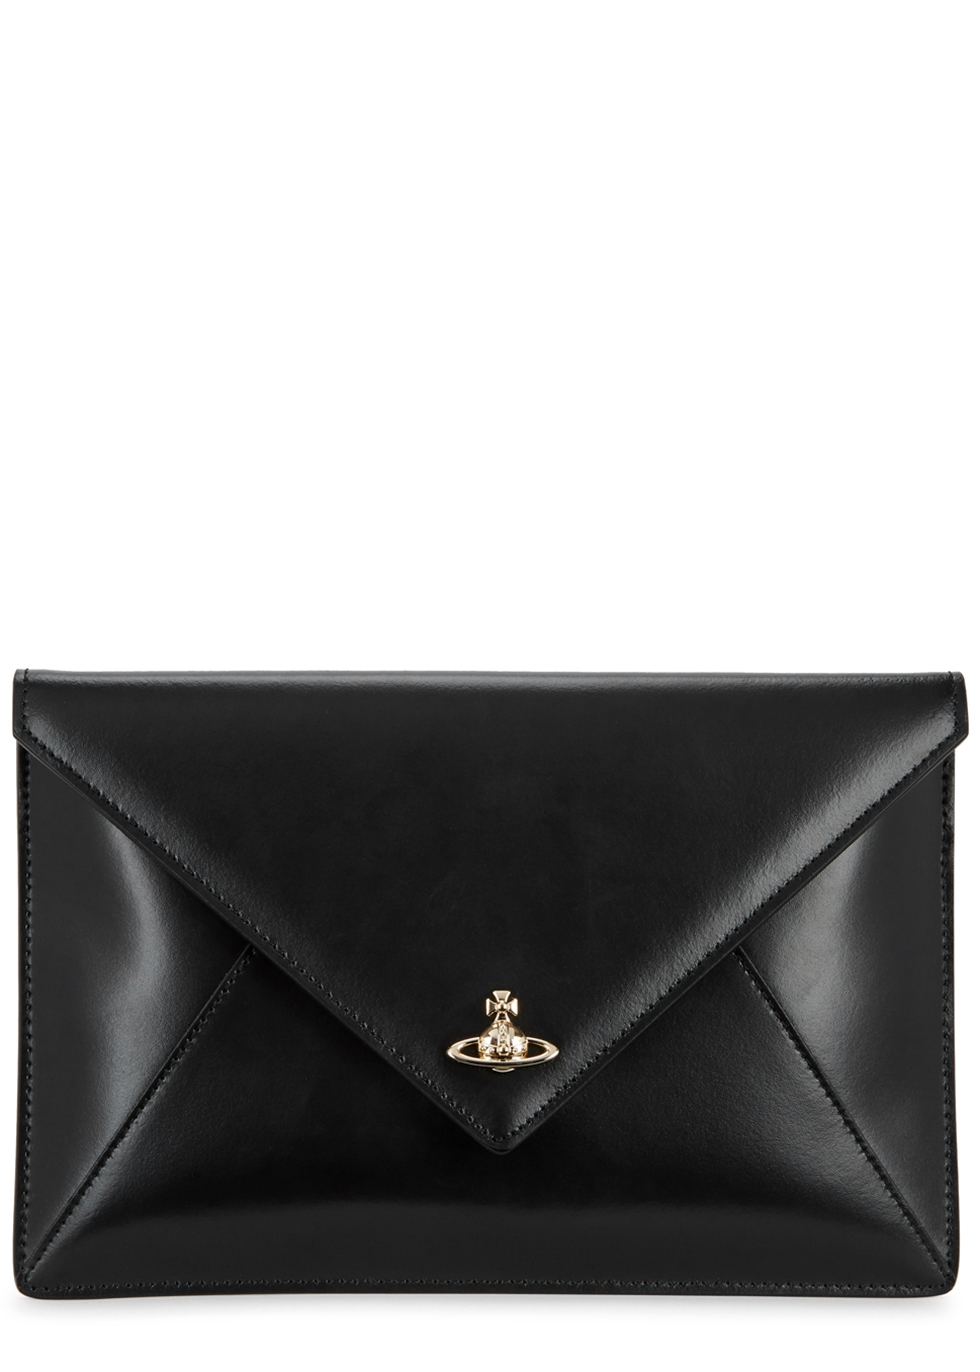 PRIVATE BLACK LEATHER ENVELOPE CLUTCH